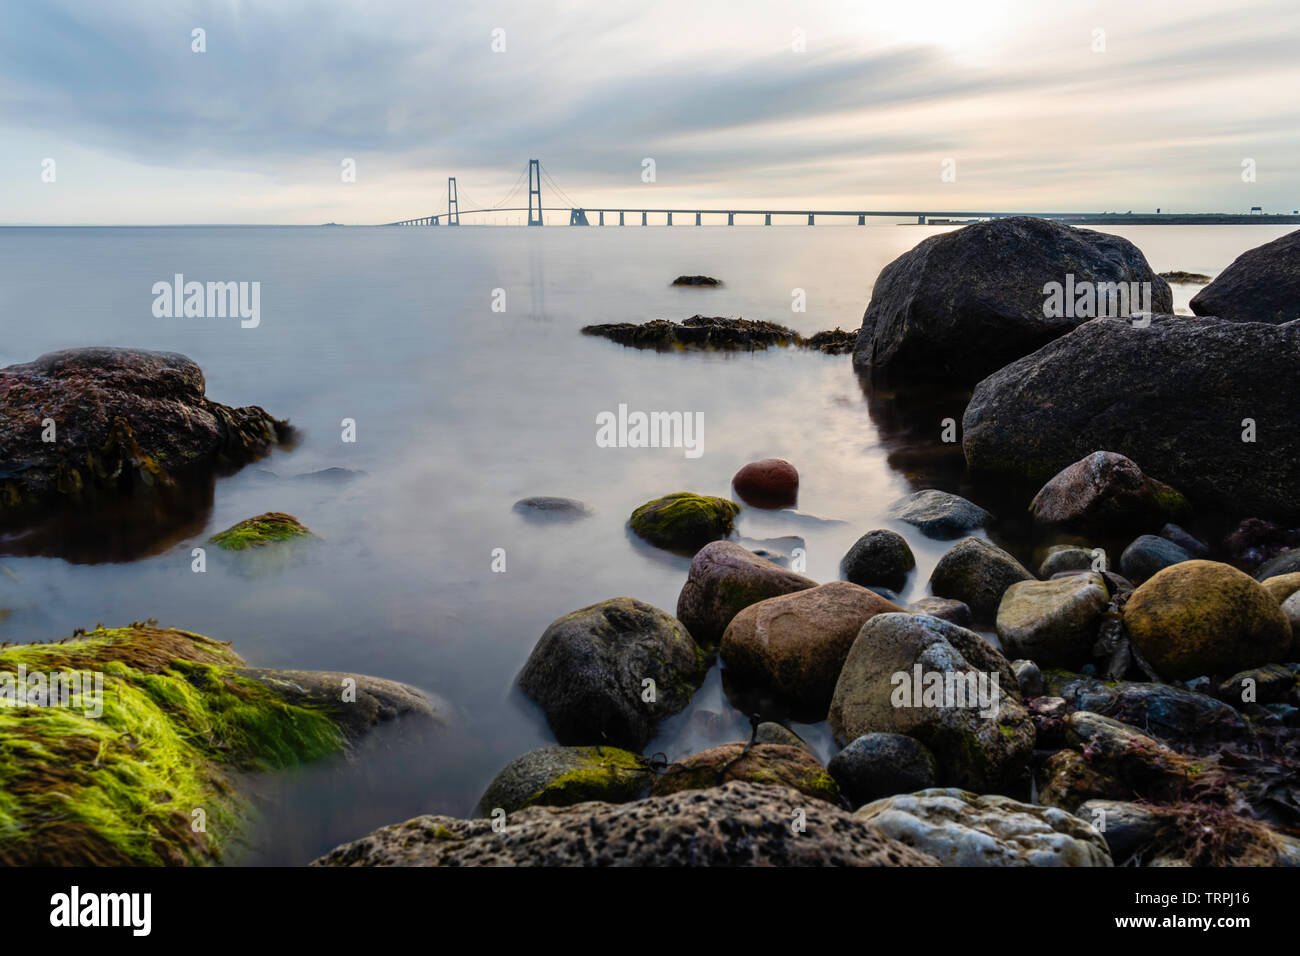 The East Bridge of the Great Belt Bridge from the Granskoven strand in Denmark with colorful rocks and the sea in the foreground - Stock Image